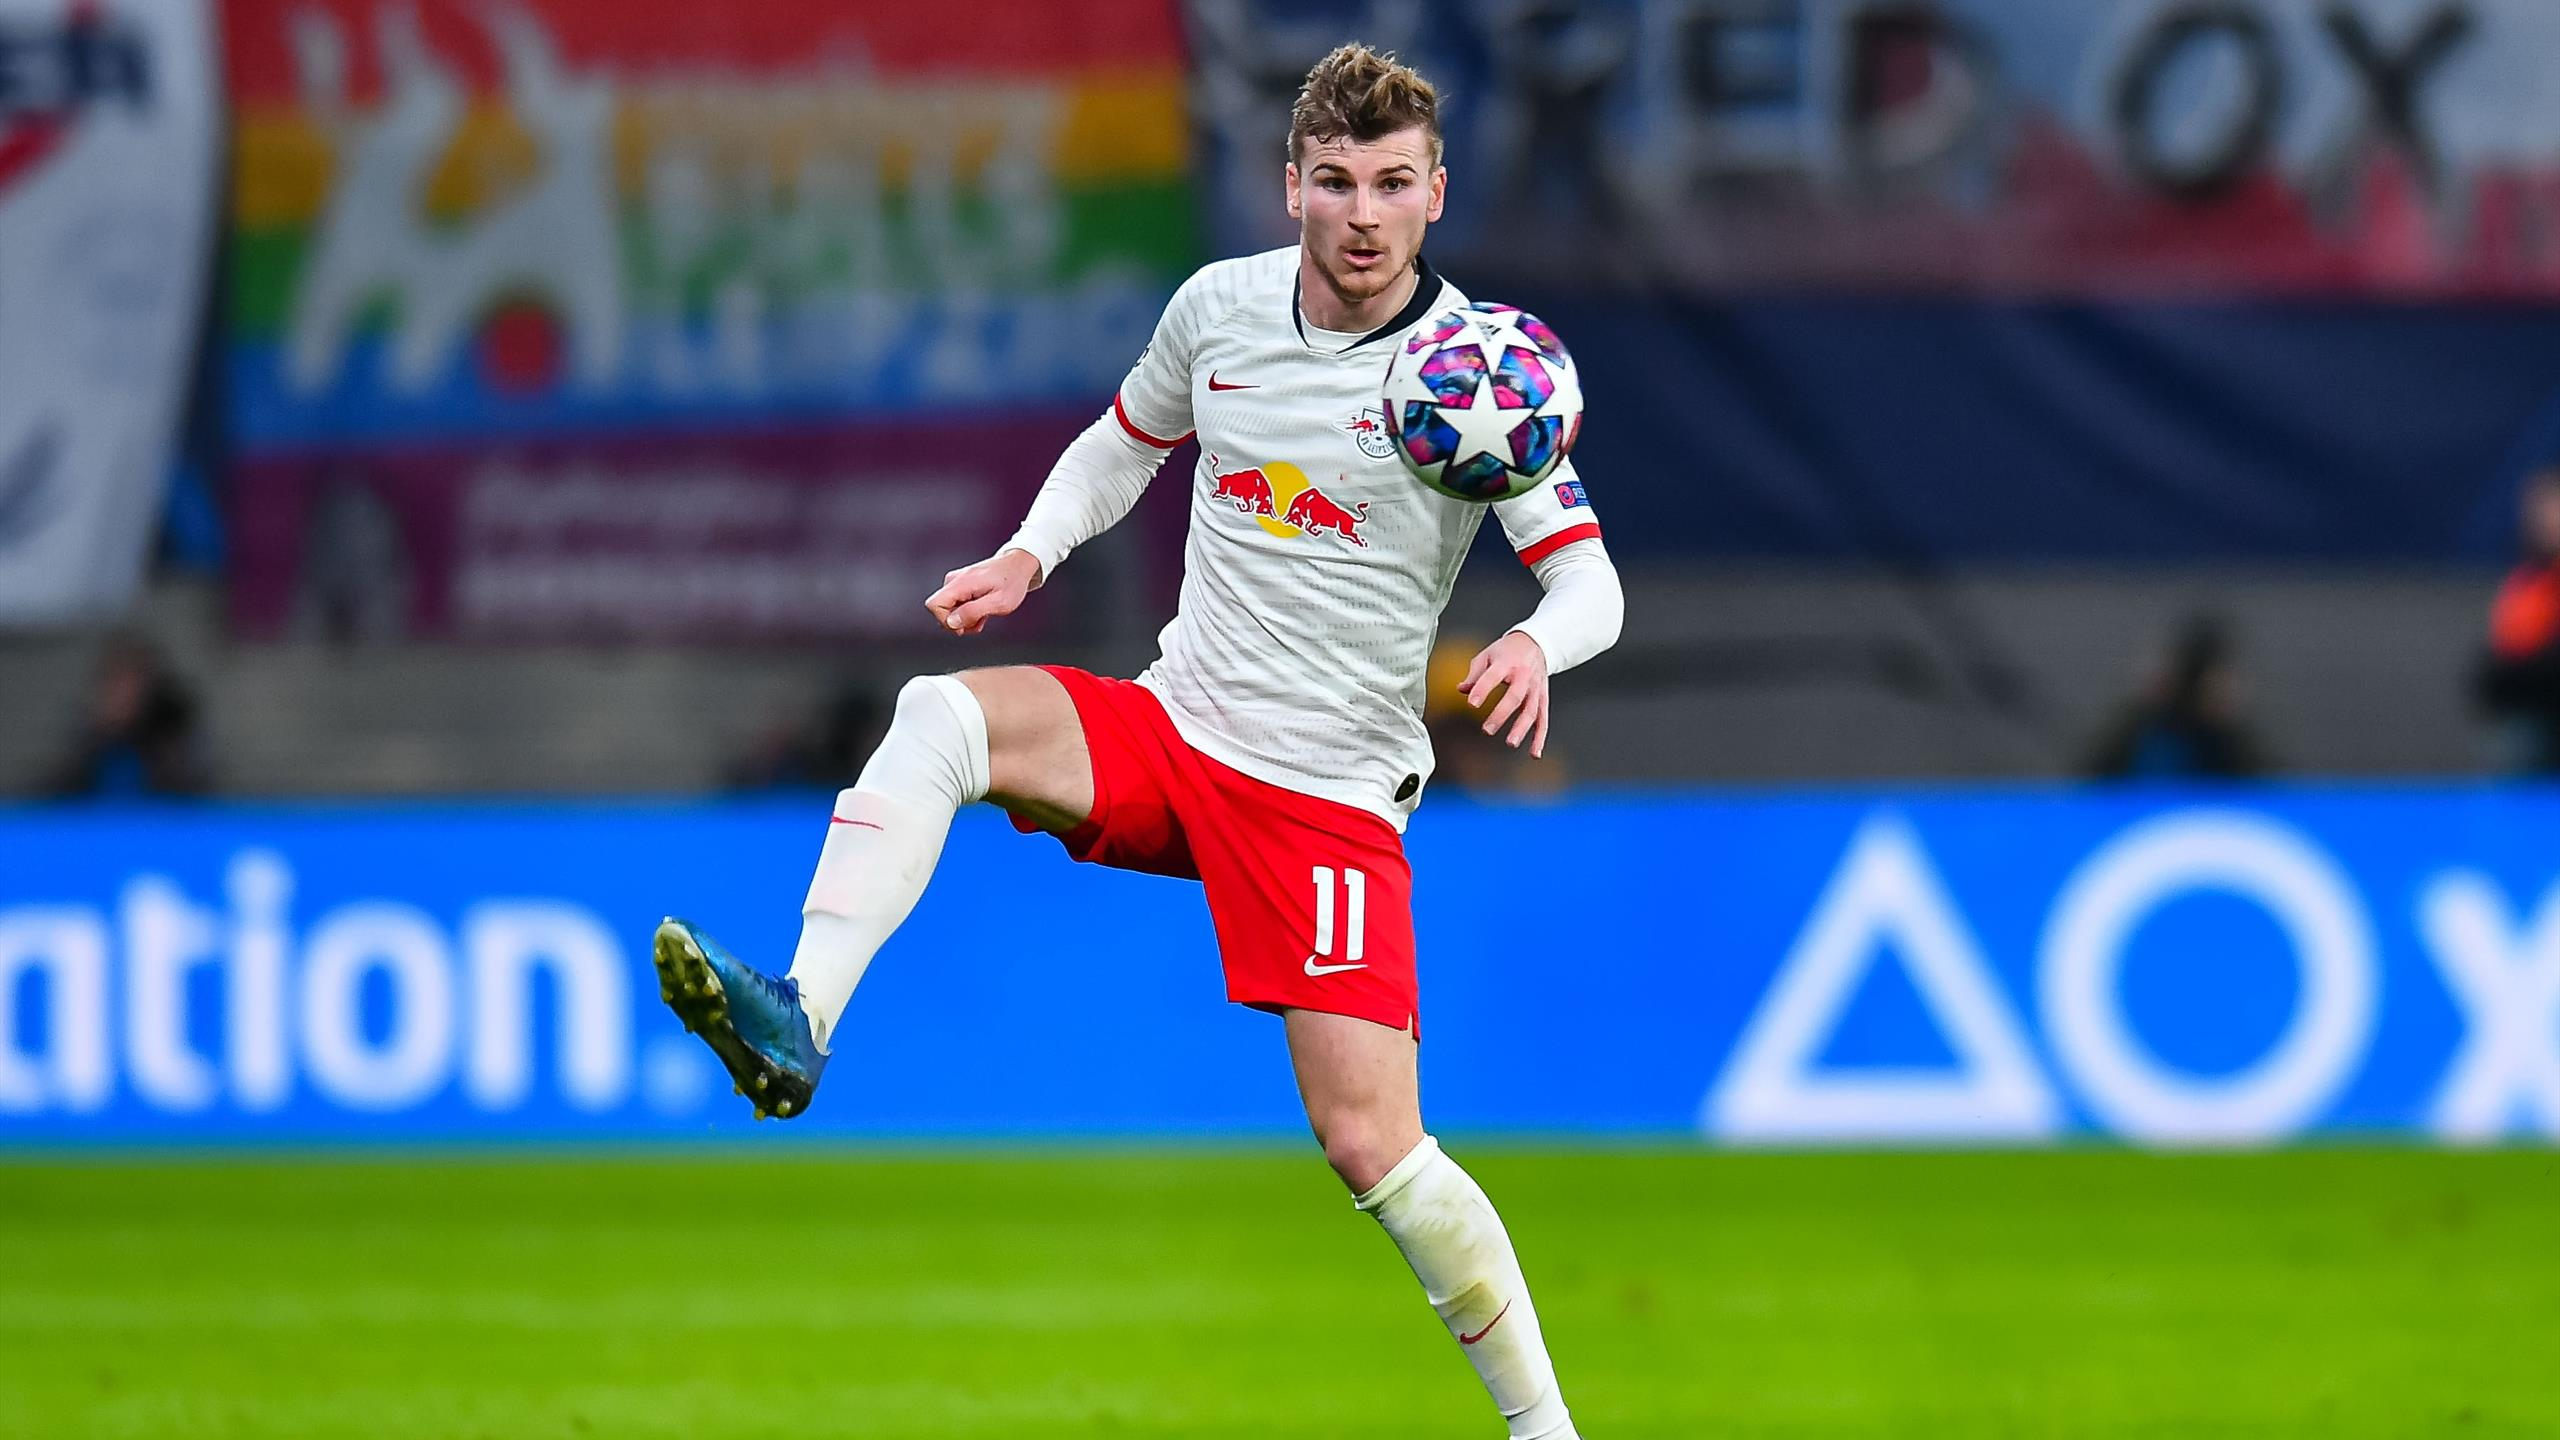 Timo Werner - Player Profile - Football - Eurosport